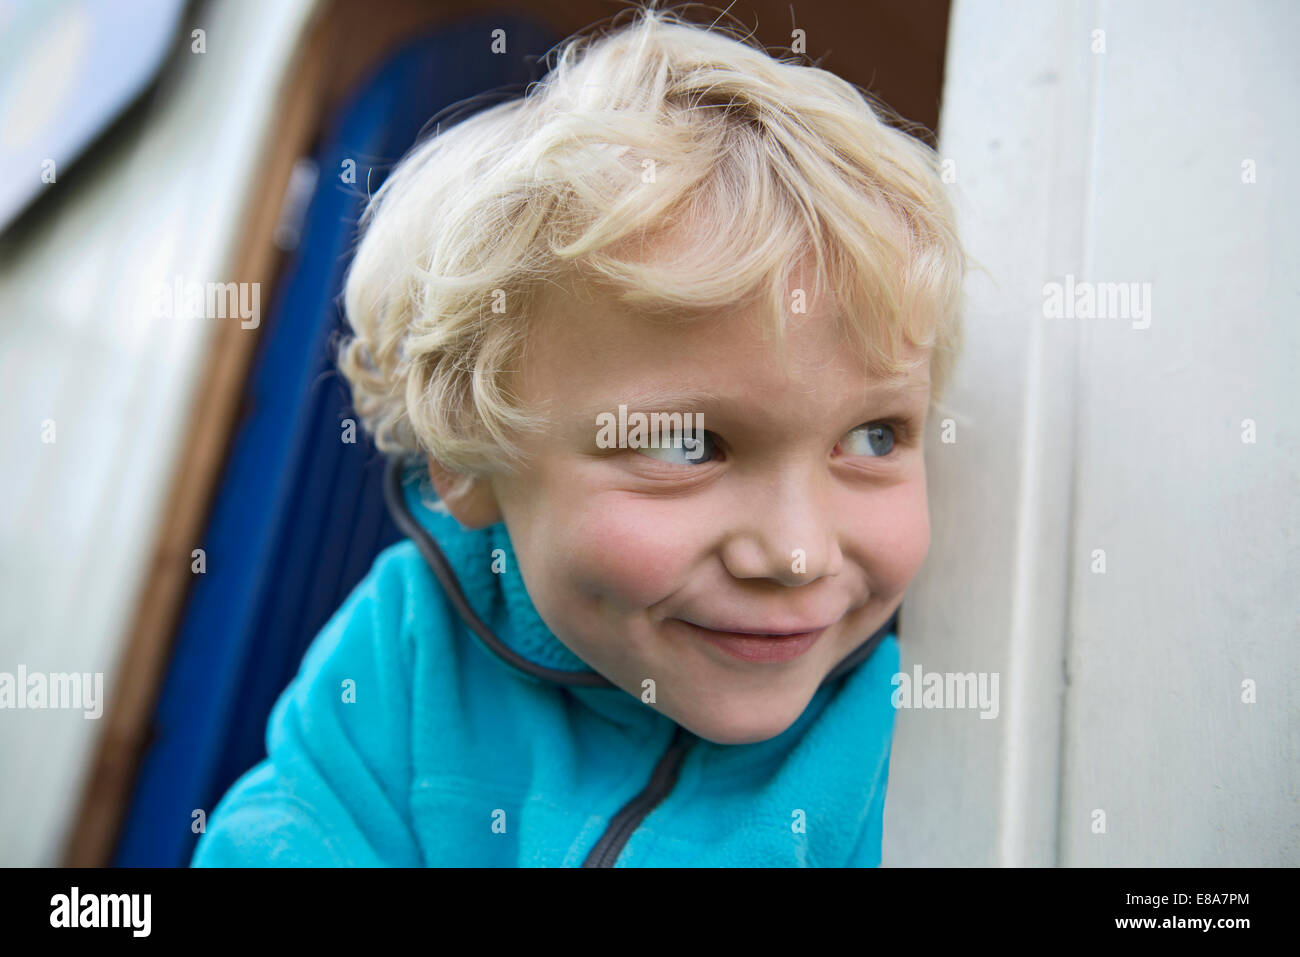 Close up portrait of young cheeky blonde boy - Stock Image